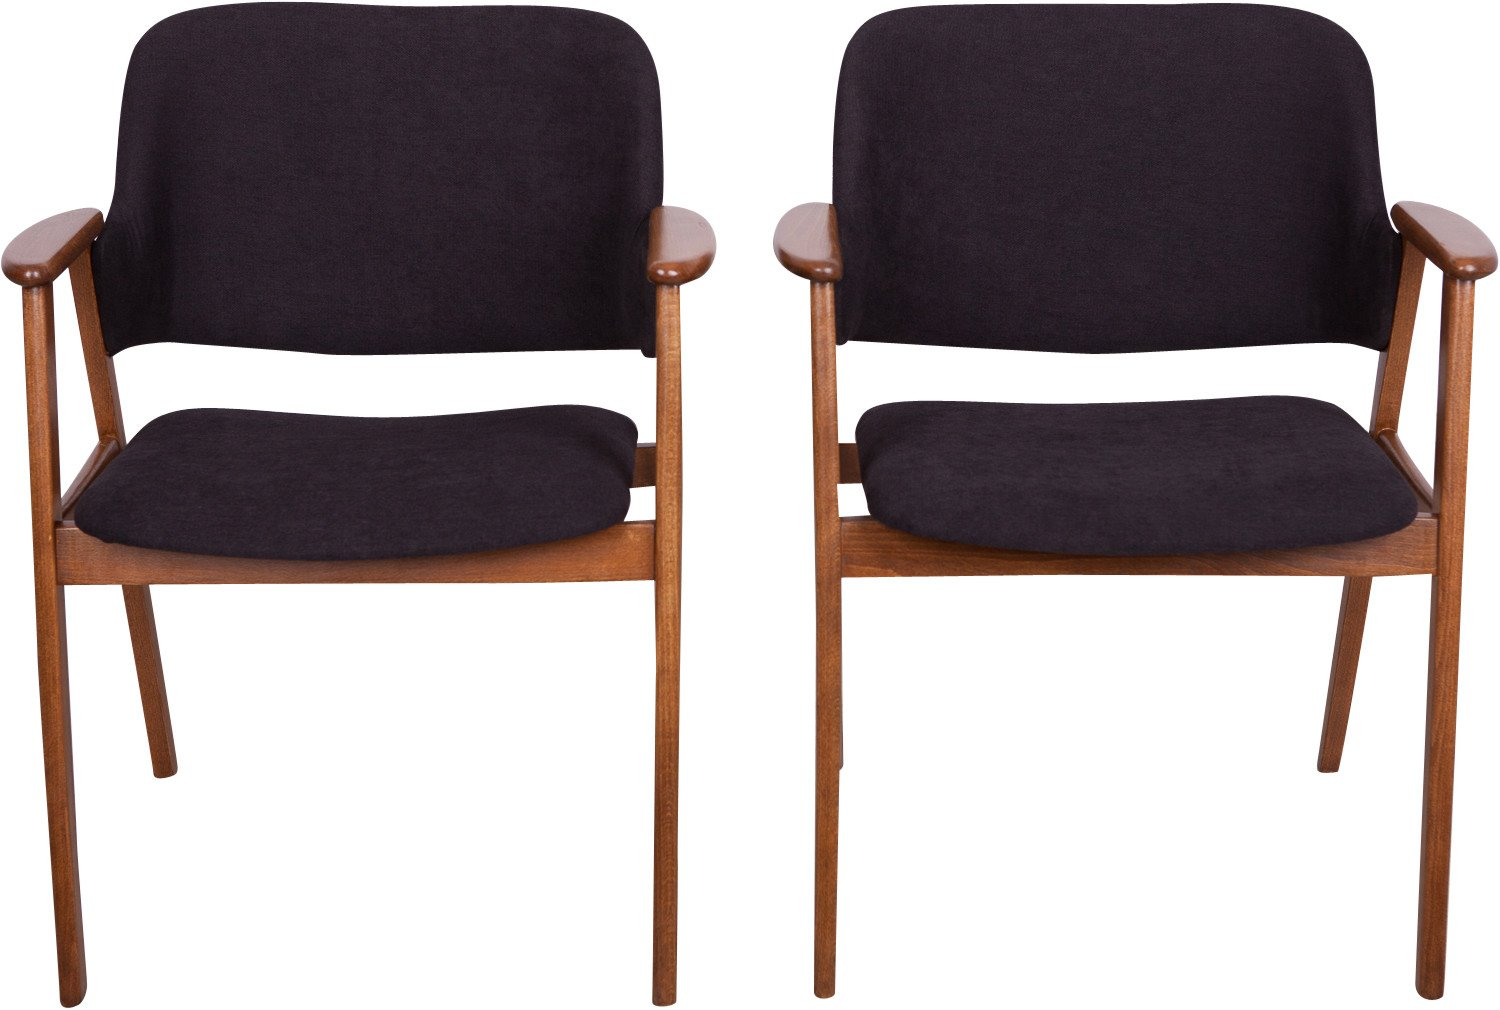 Pair of Armchairs, 1960s